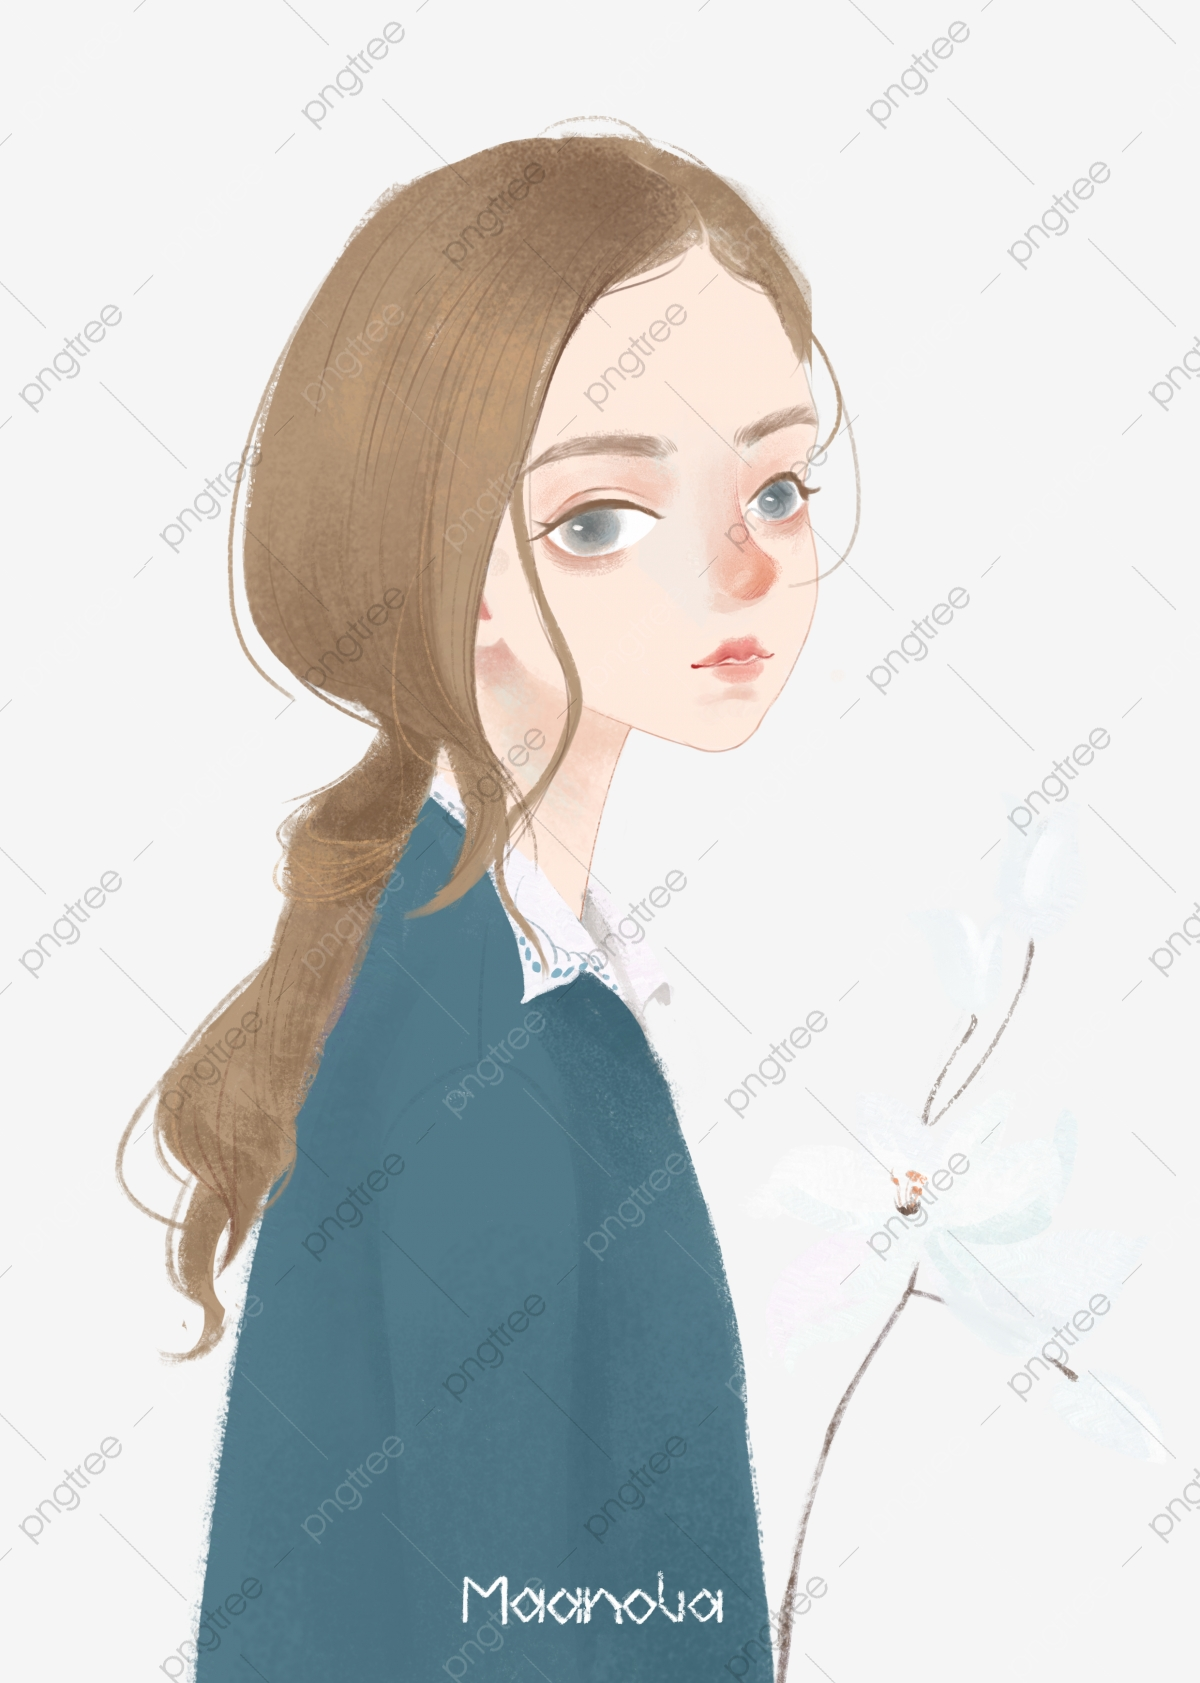 Beautiful Illustration Long Haired Girl Hand Drawn Beauty